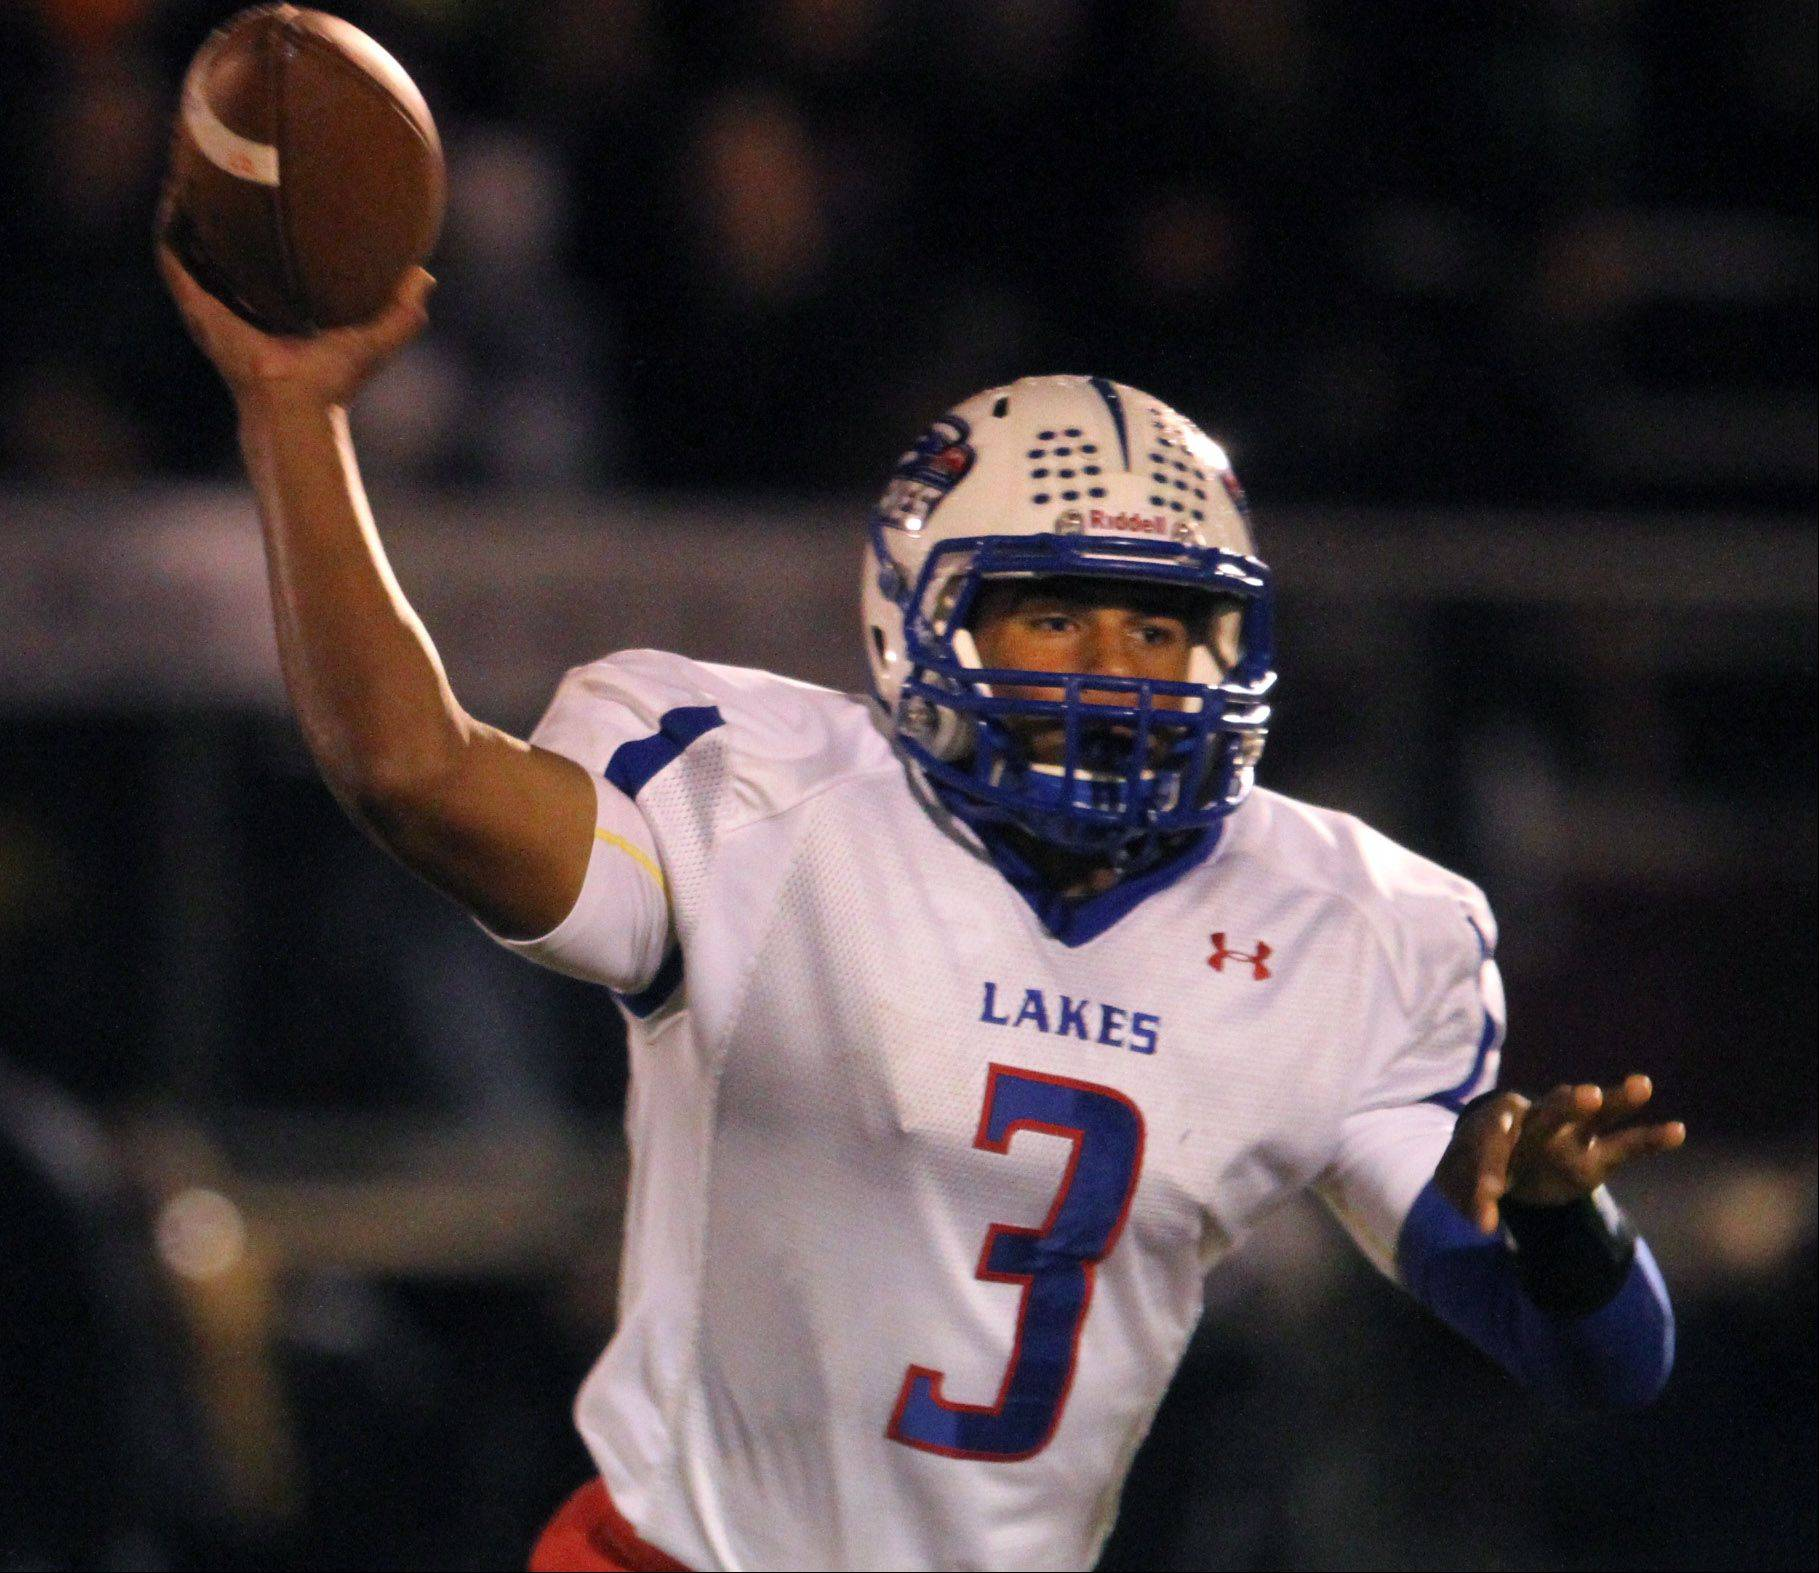 Lakes quarterback T.J. Edwards passes against Antioch.